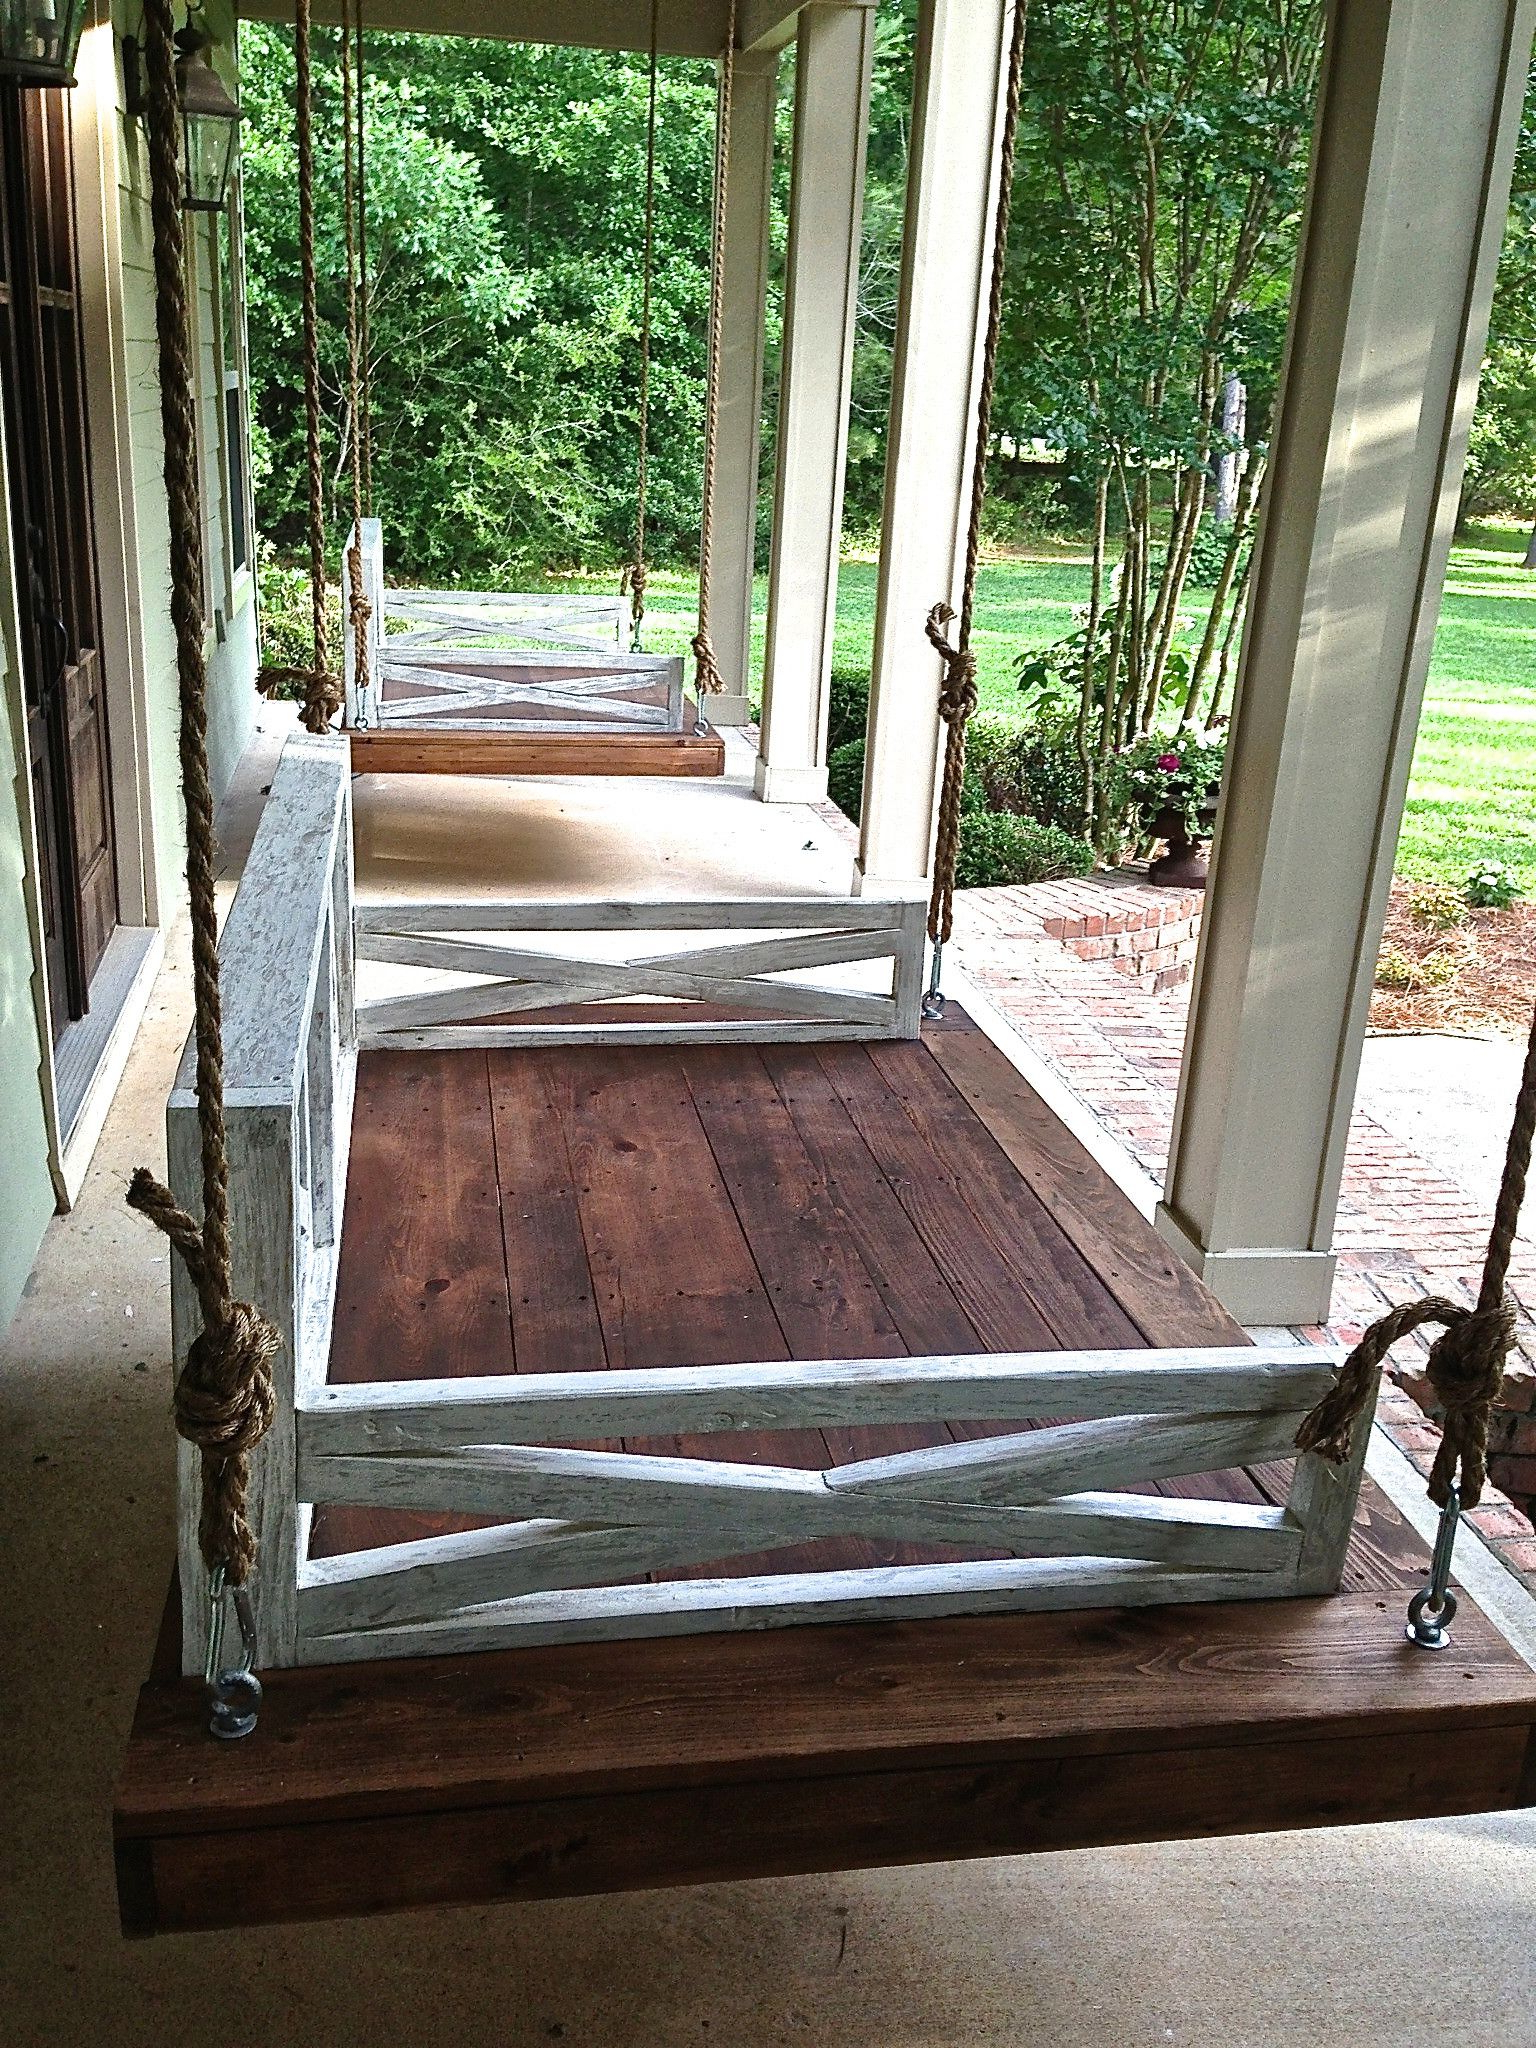 Saltaire Regarding Daybed Porch Swings With Stand (View 6 of 30)